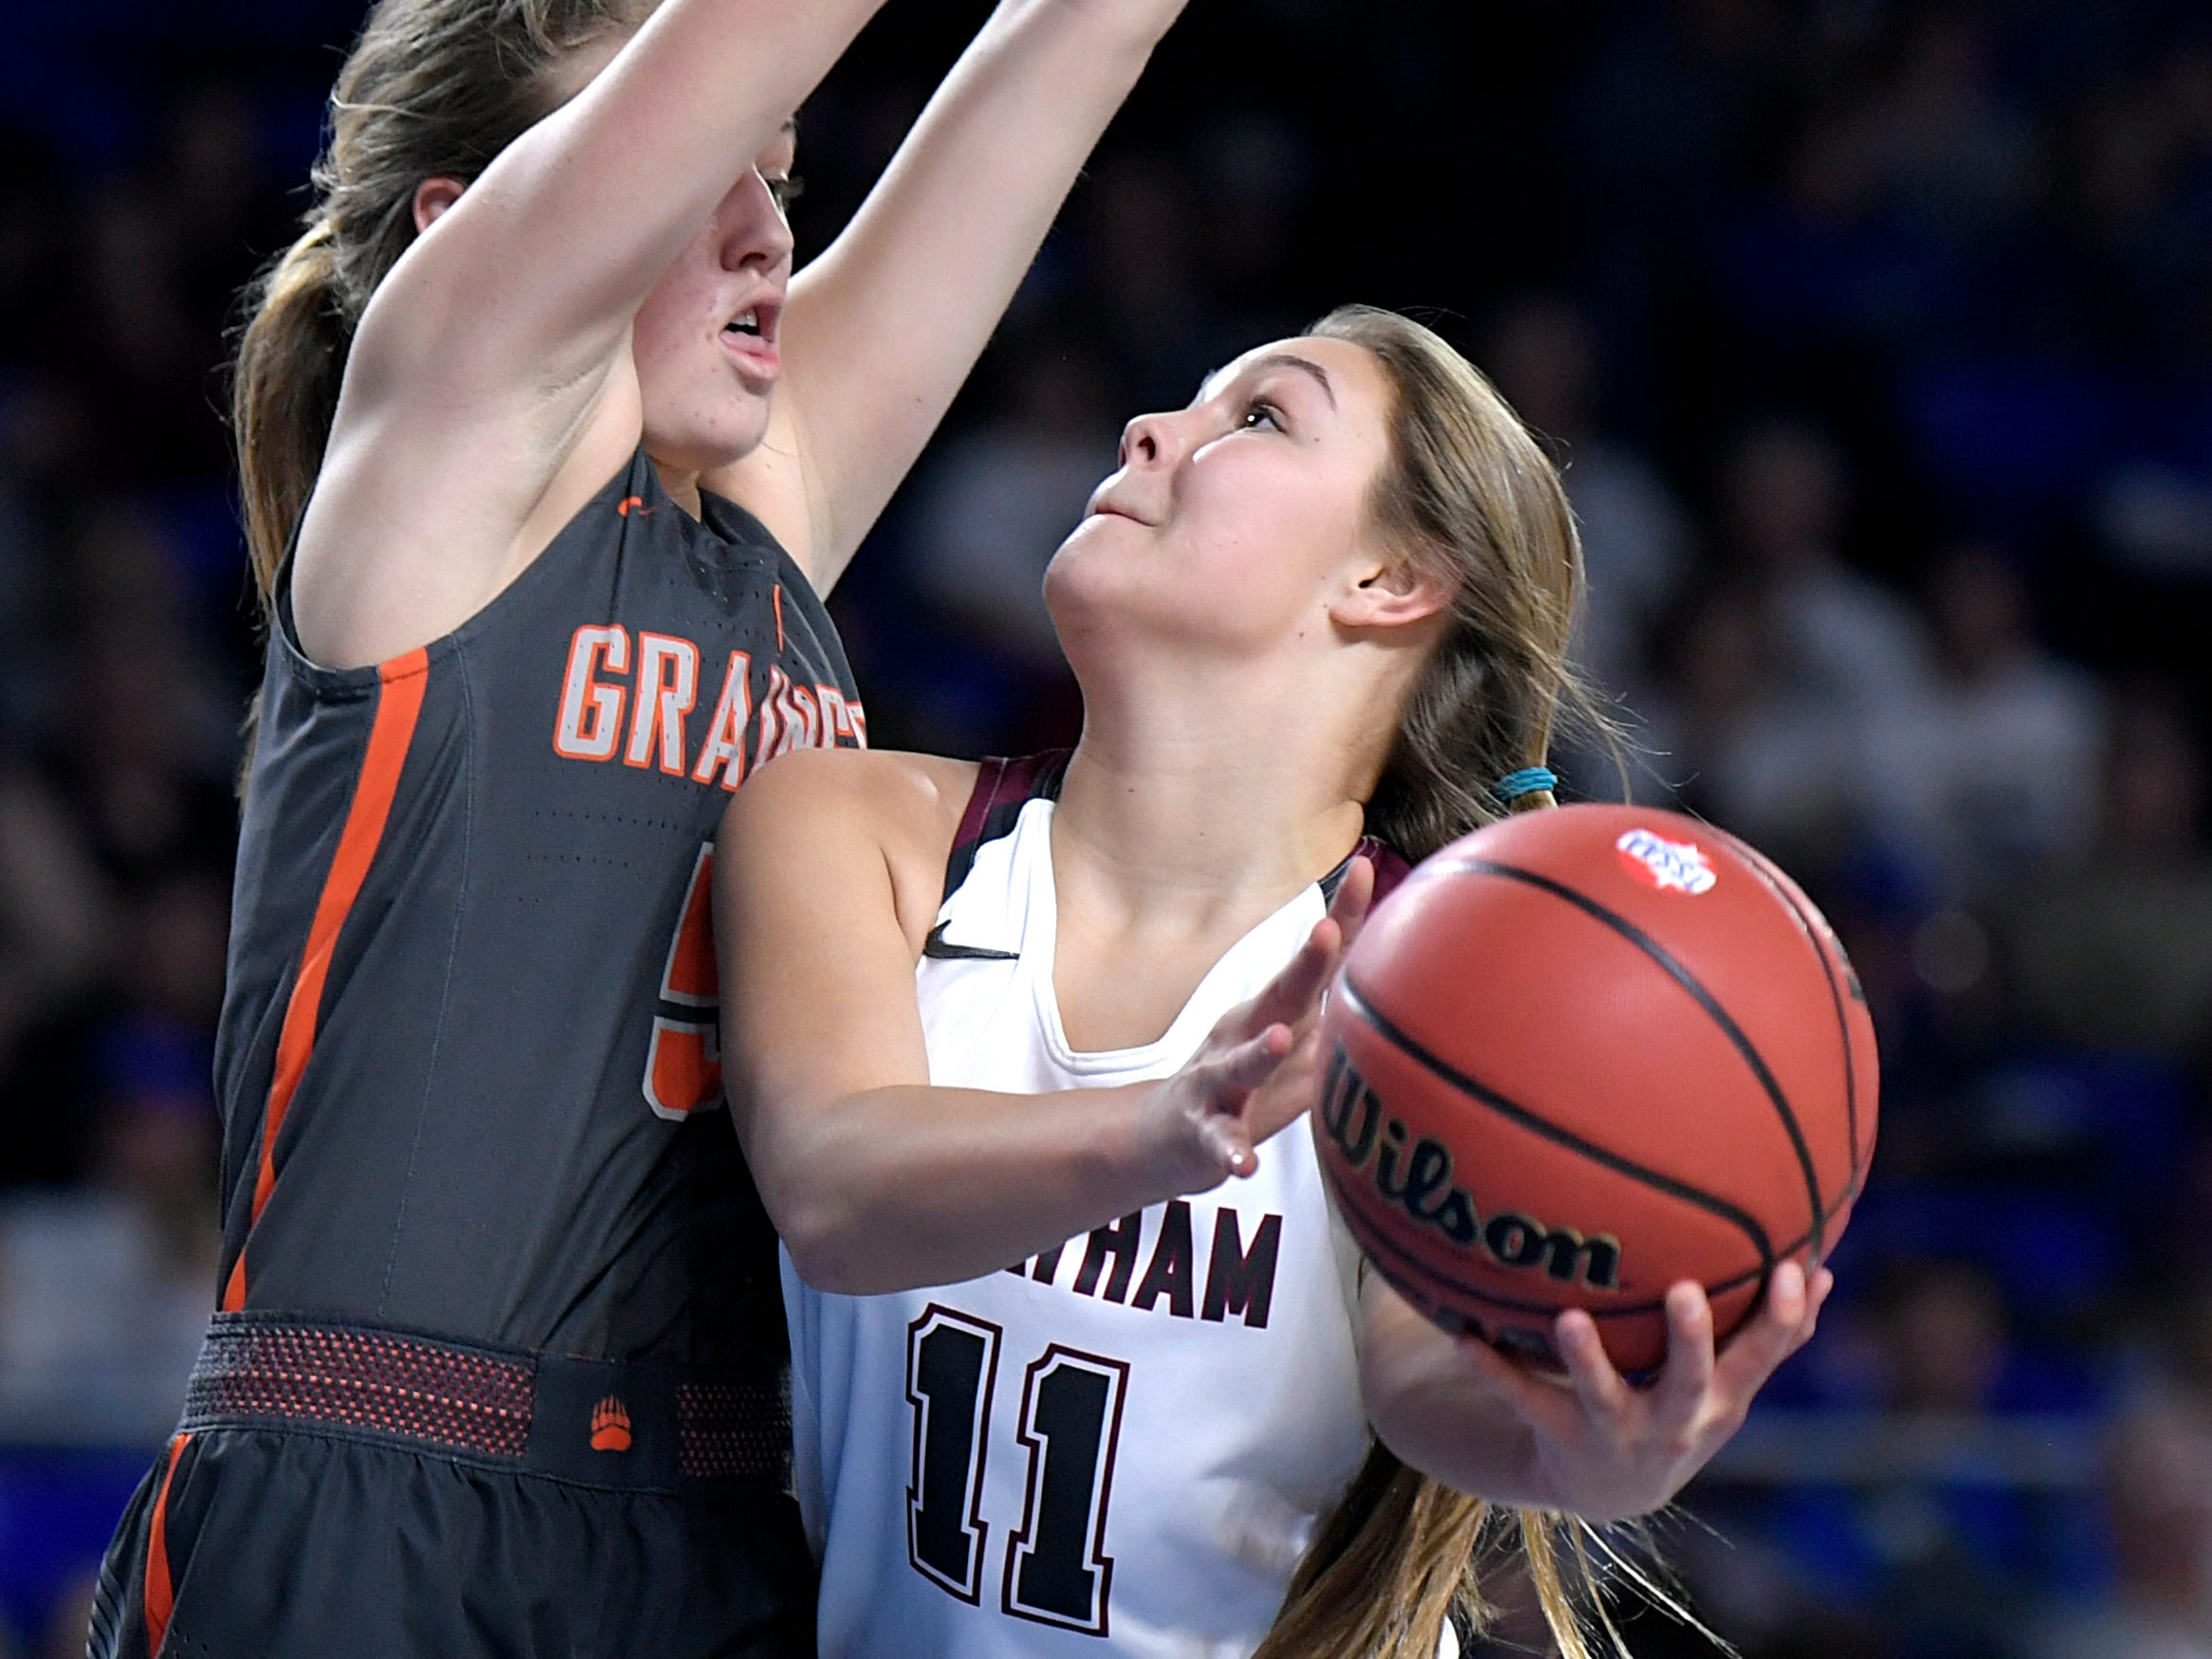 Cheatham County's Jesse Bumpus (11) shoots against Grainger's Tori Rutherford (5) during the quarter finals of TSSAA BlueCross Class AA girls basketball championship at MTSU's Murphy Center in Murfreesboro on Wednesday, March 6, 2019.